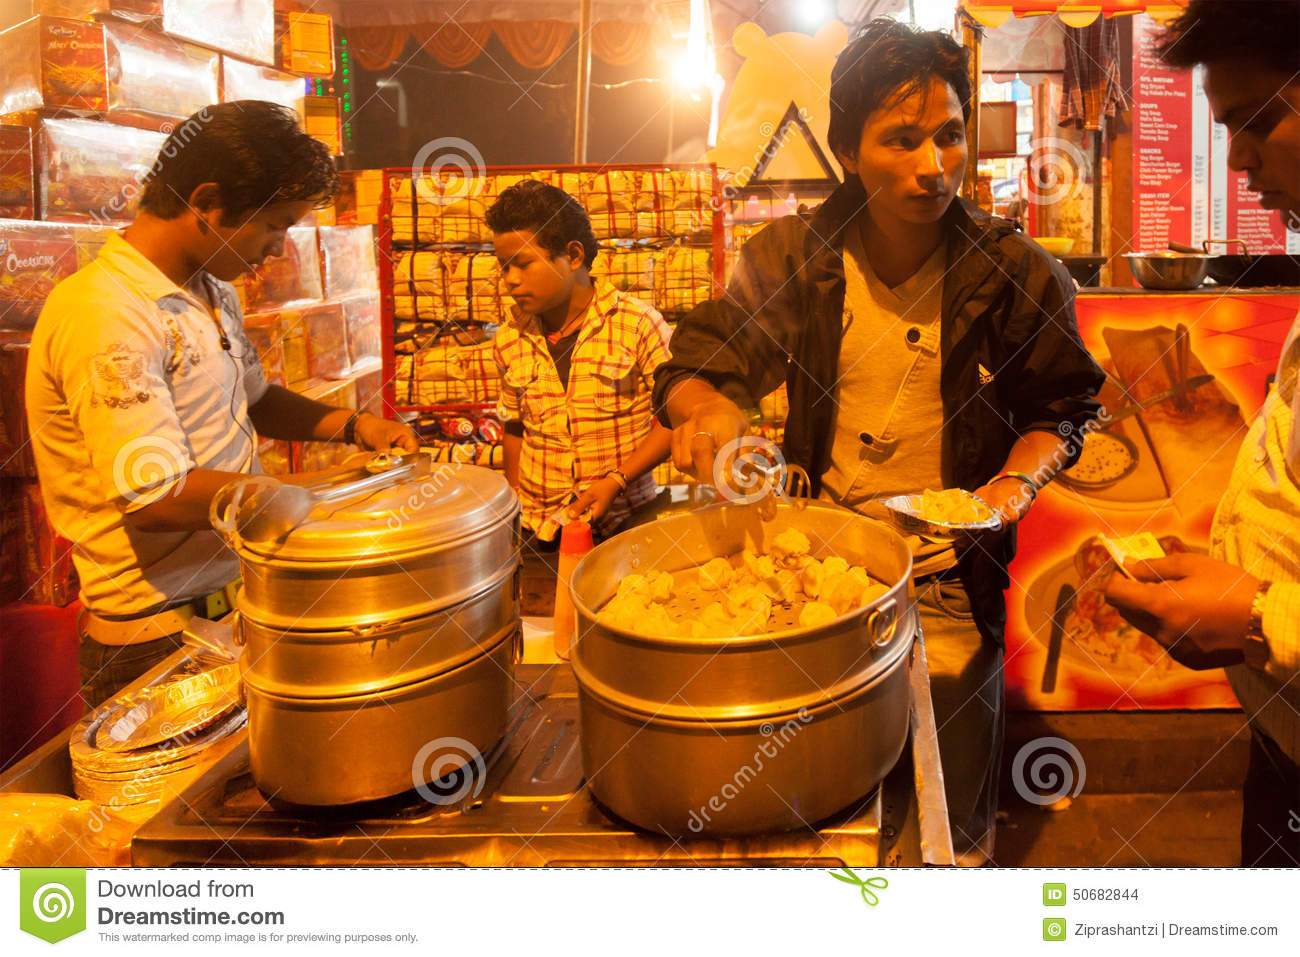 What is the meaning of vendor in hindi driverlayer for Cuisine meaning in hindi